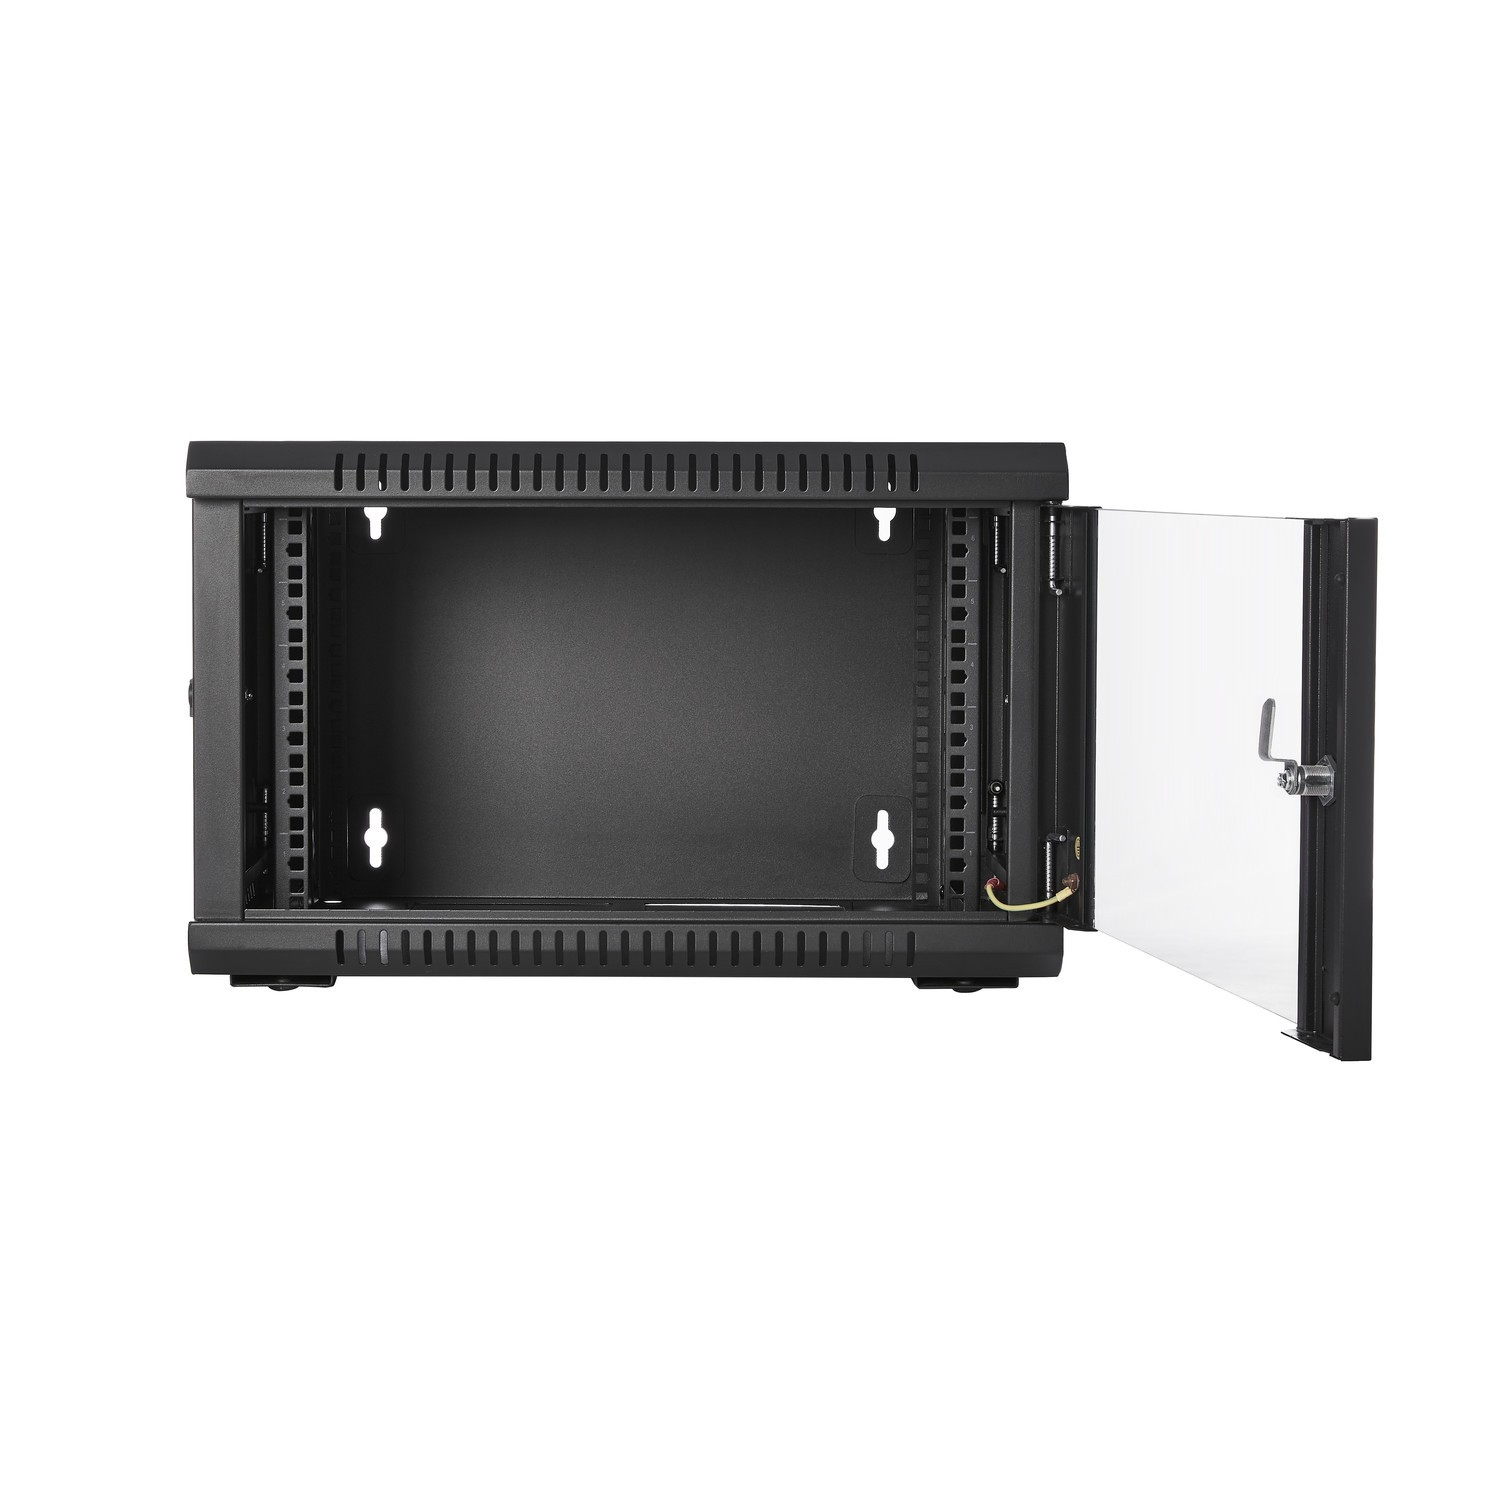 V7 - Racks                       6u Rack Wall Mount Enclosure        Locking Glass Door 450mm            Rmwc6ug-1e